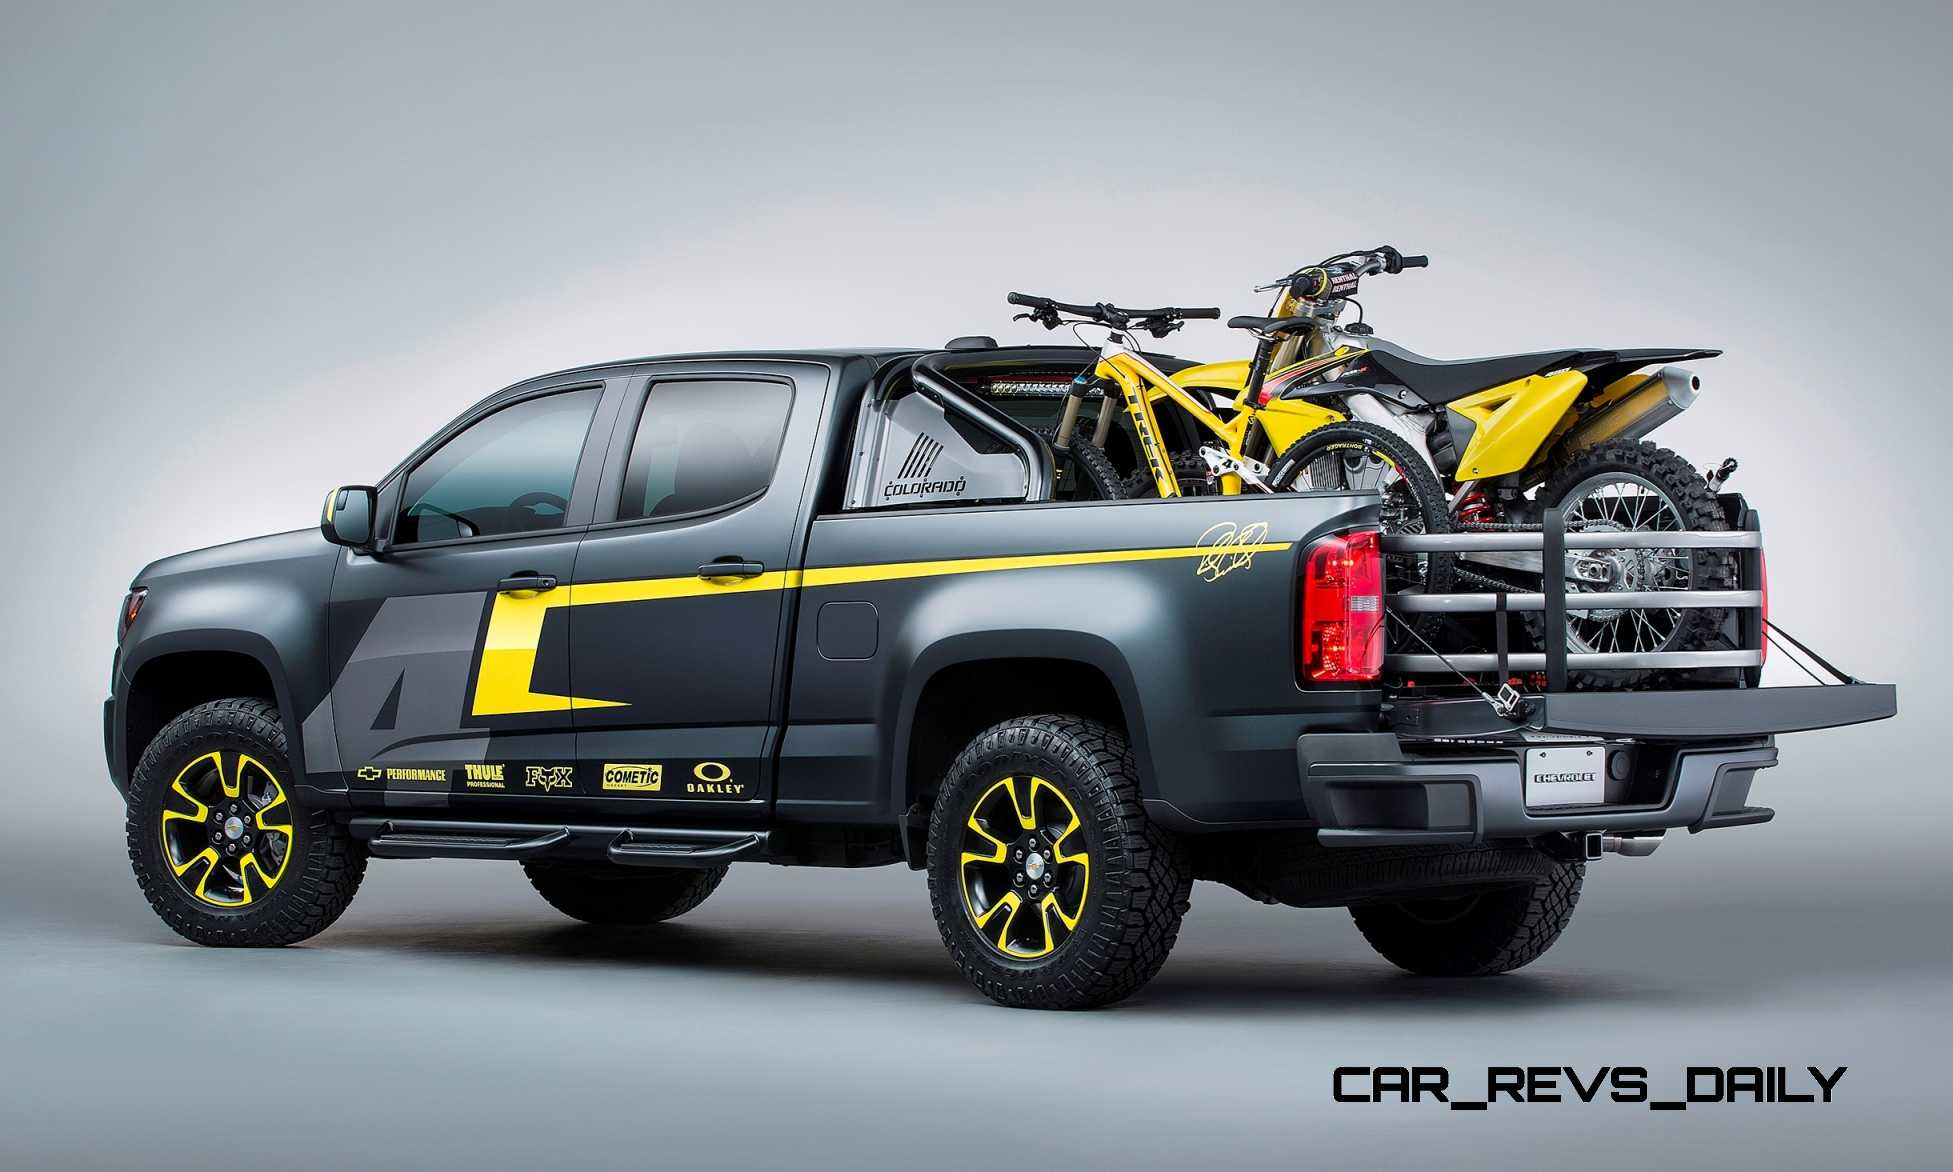 Great to see a bit more effort from chevy than the first colorado concept announced a few weeks ago